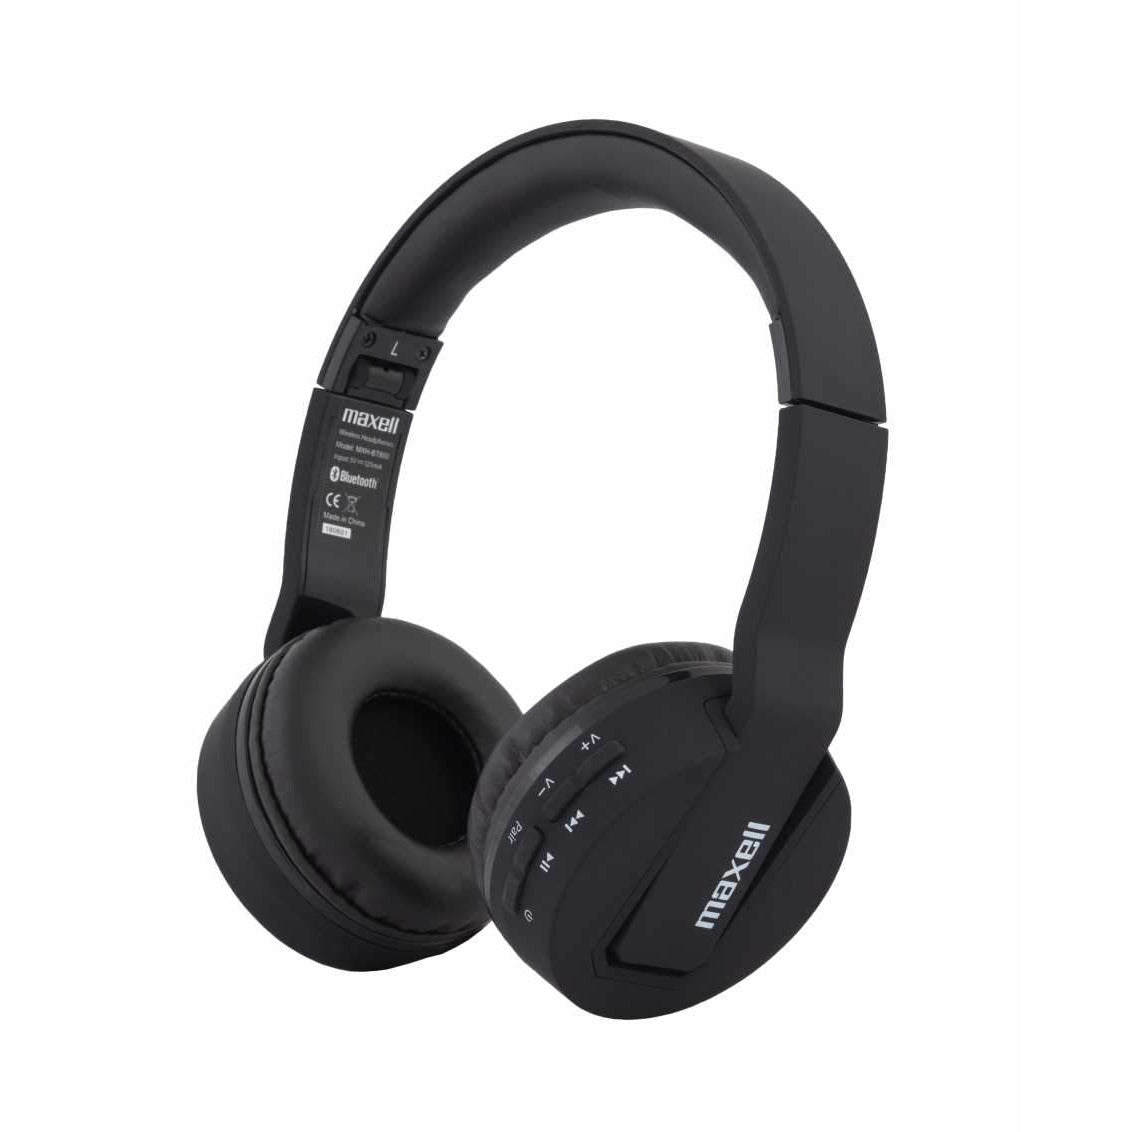 Maxell BT800 Headphone Black [Accessories]